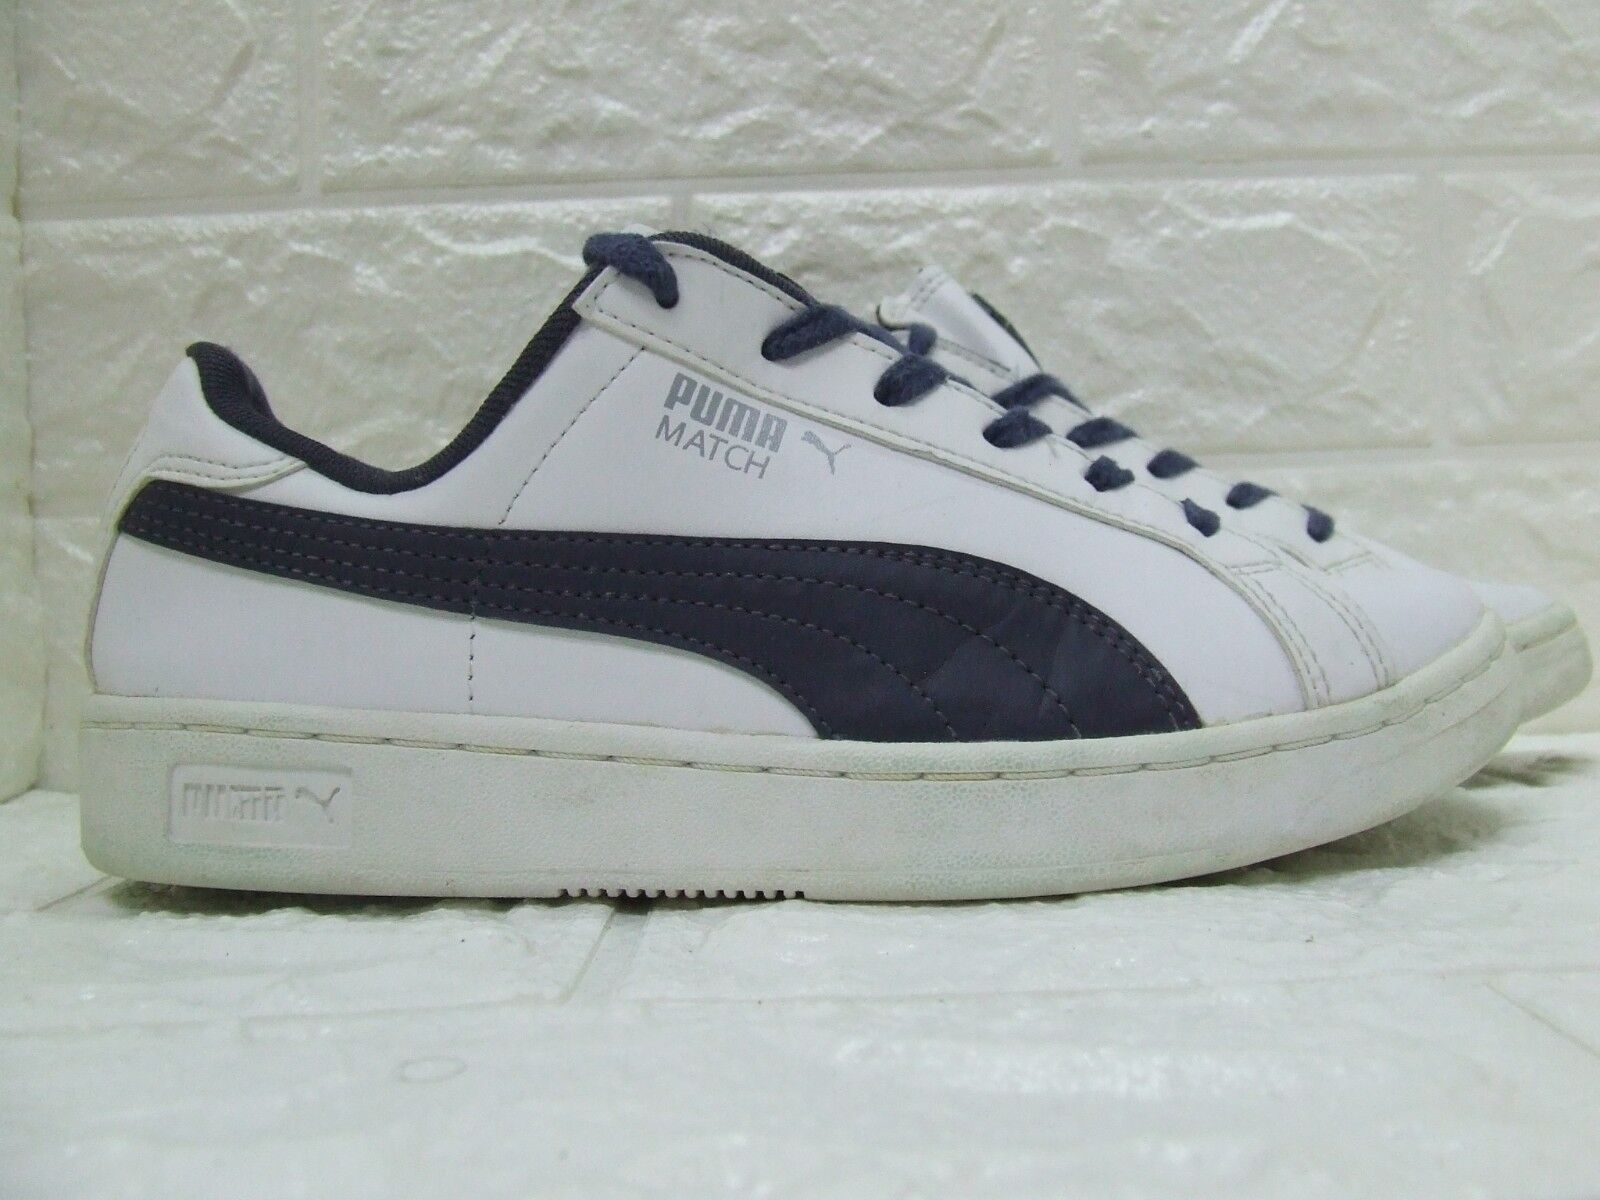 SHOES MAN WOMAN VINTAGE SNEAKERS PUMA MATCH size US 5 - 37 (006)